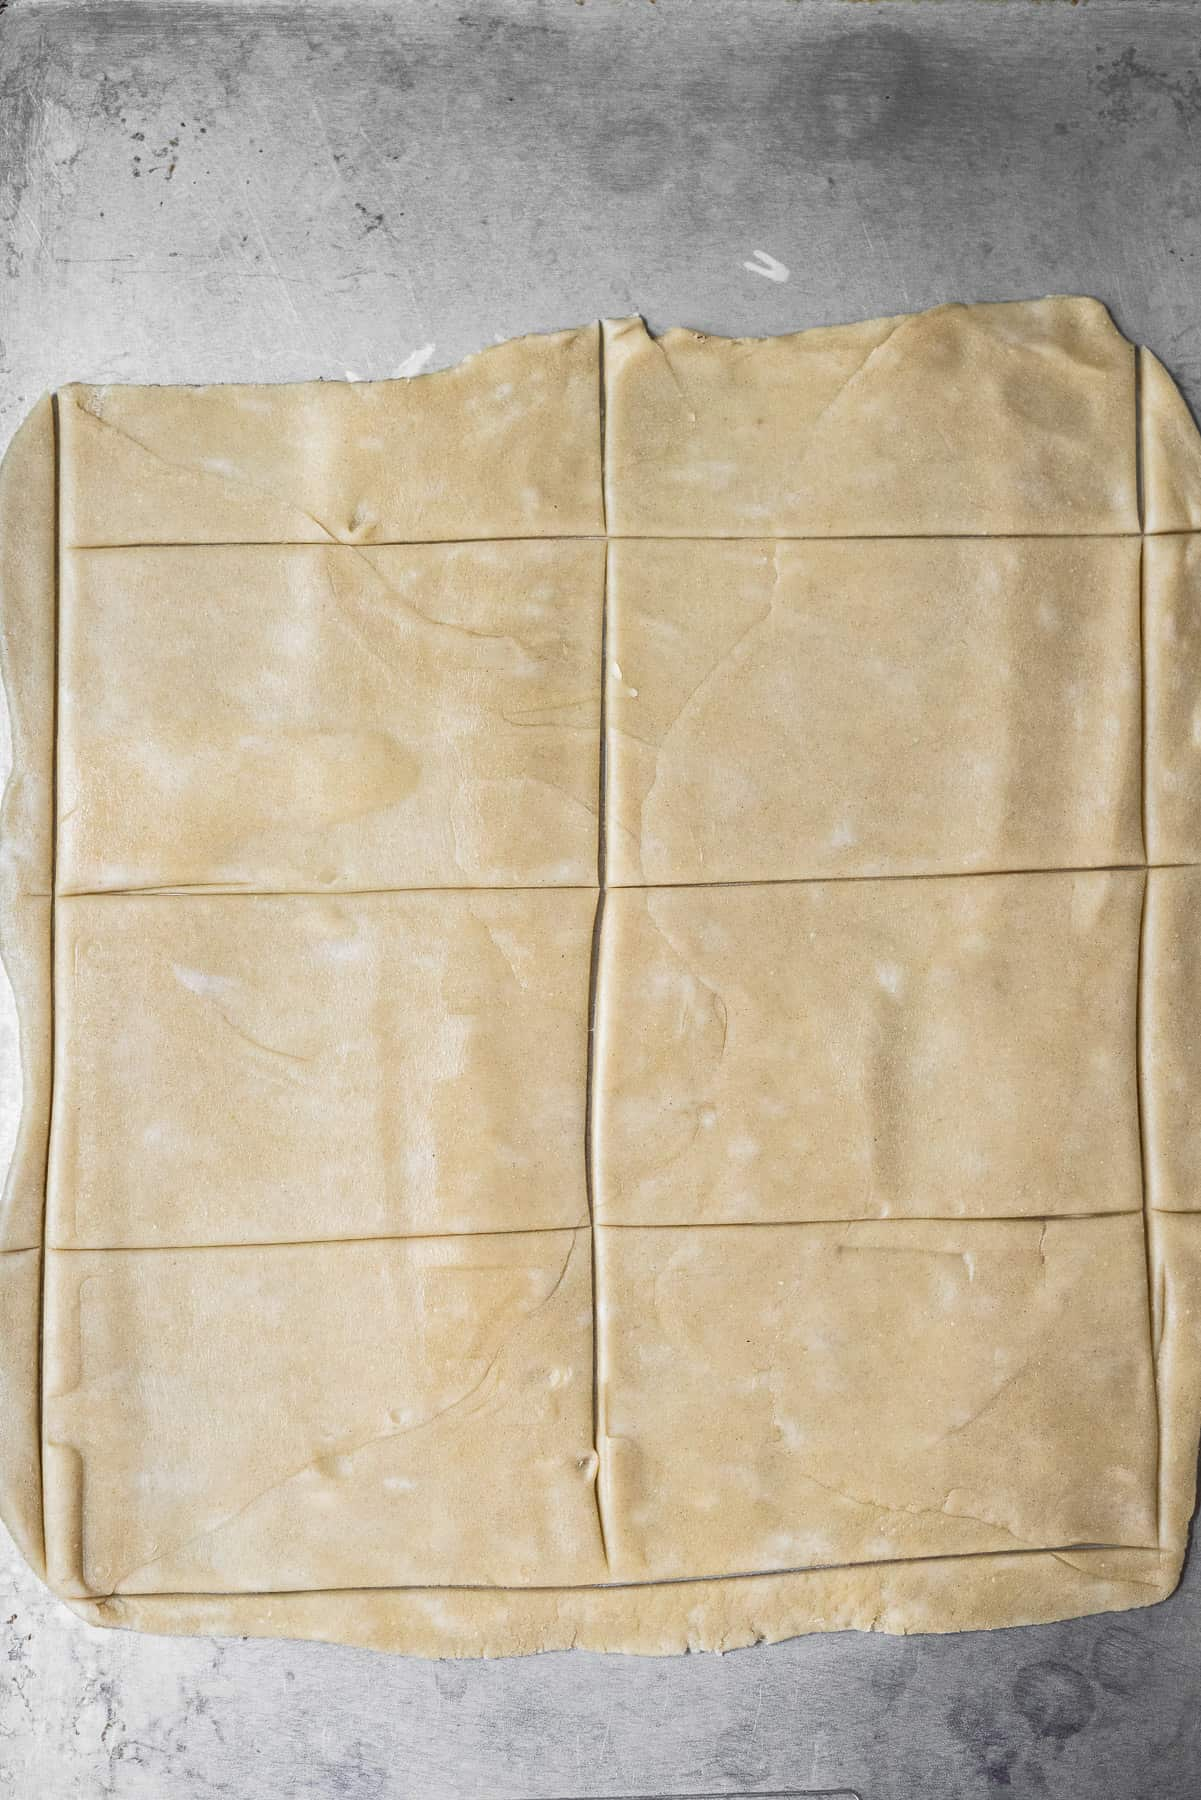 cutting out rectangles in pie dough on a sheet tray